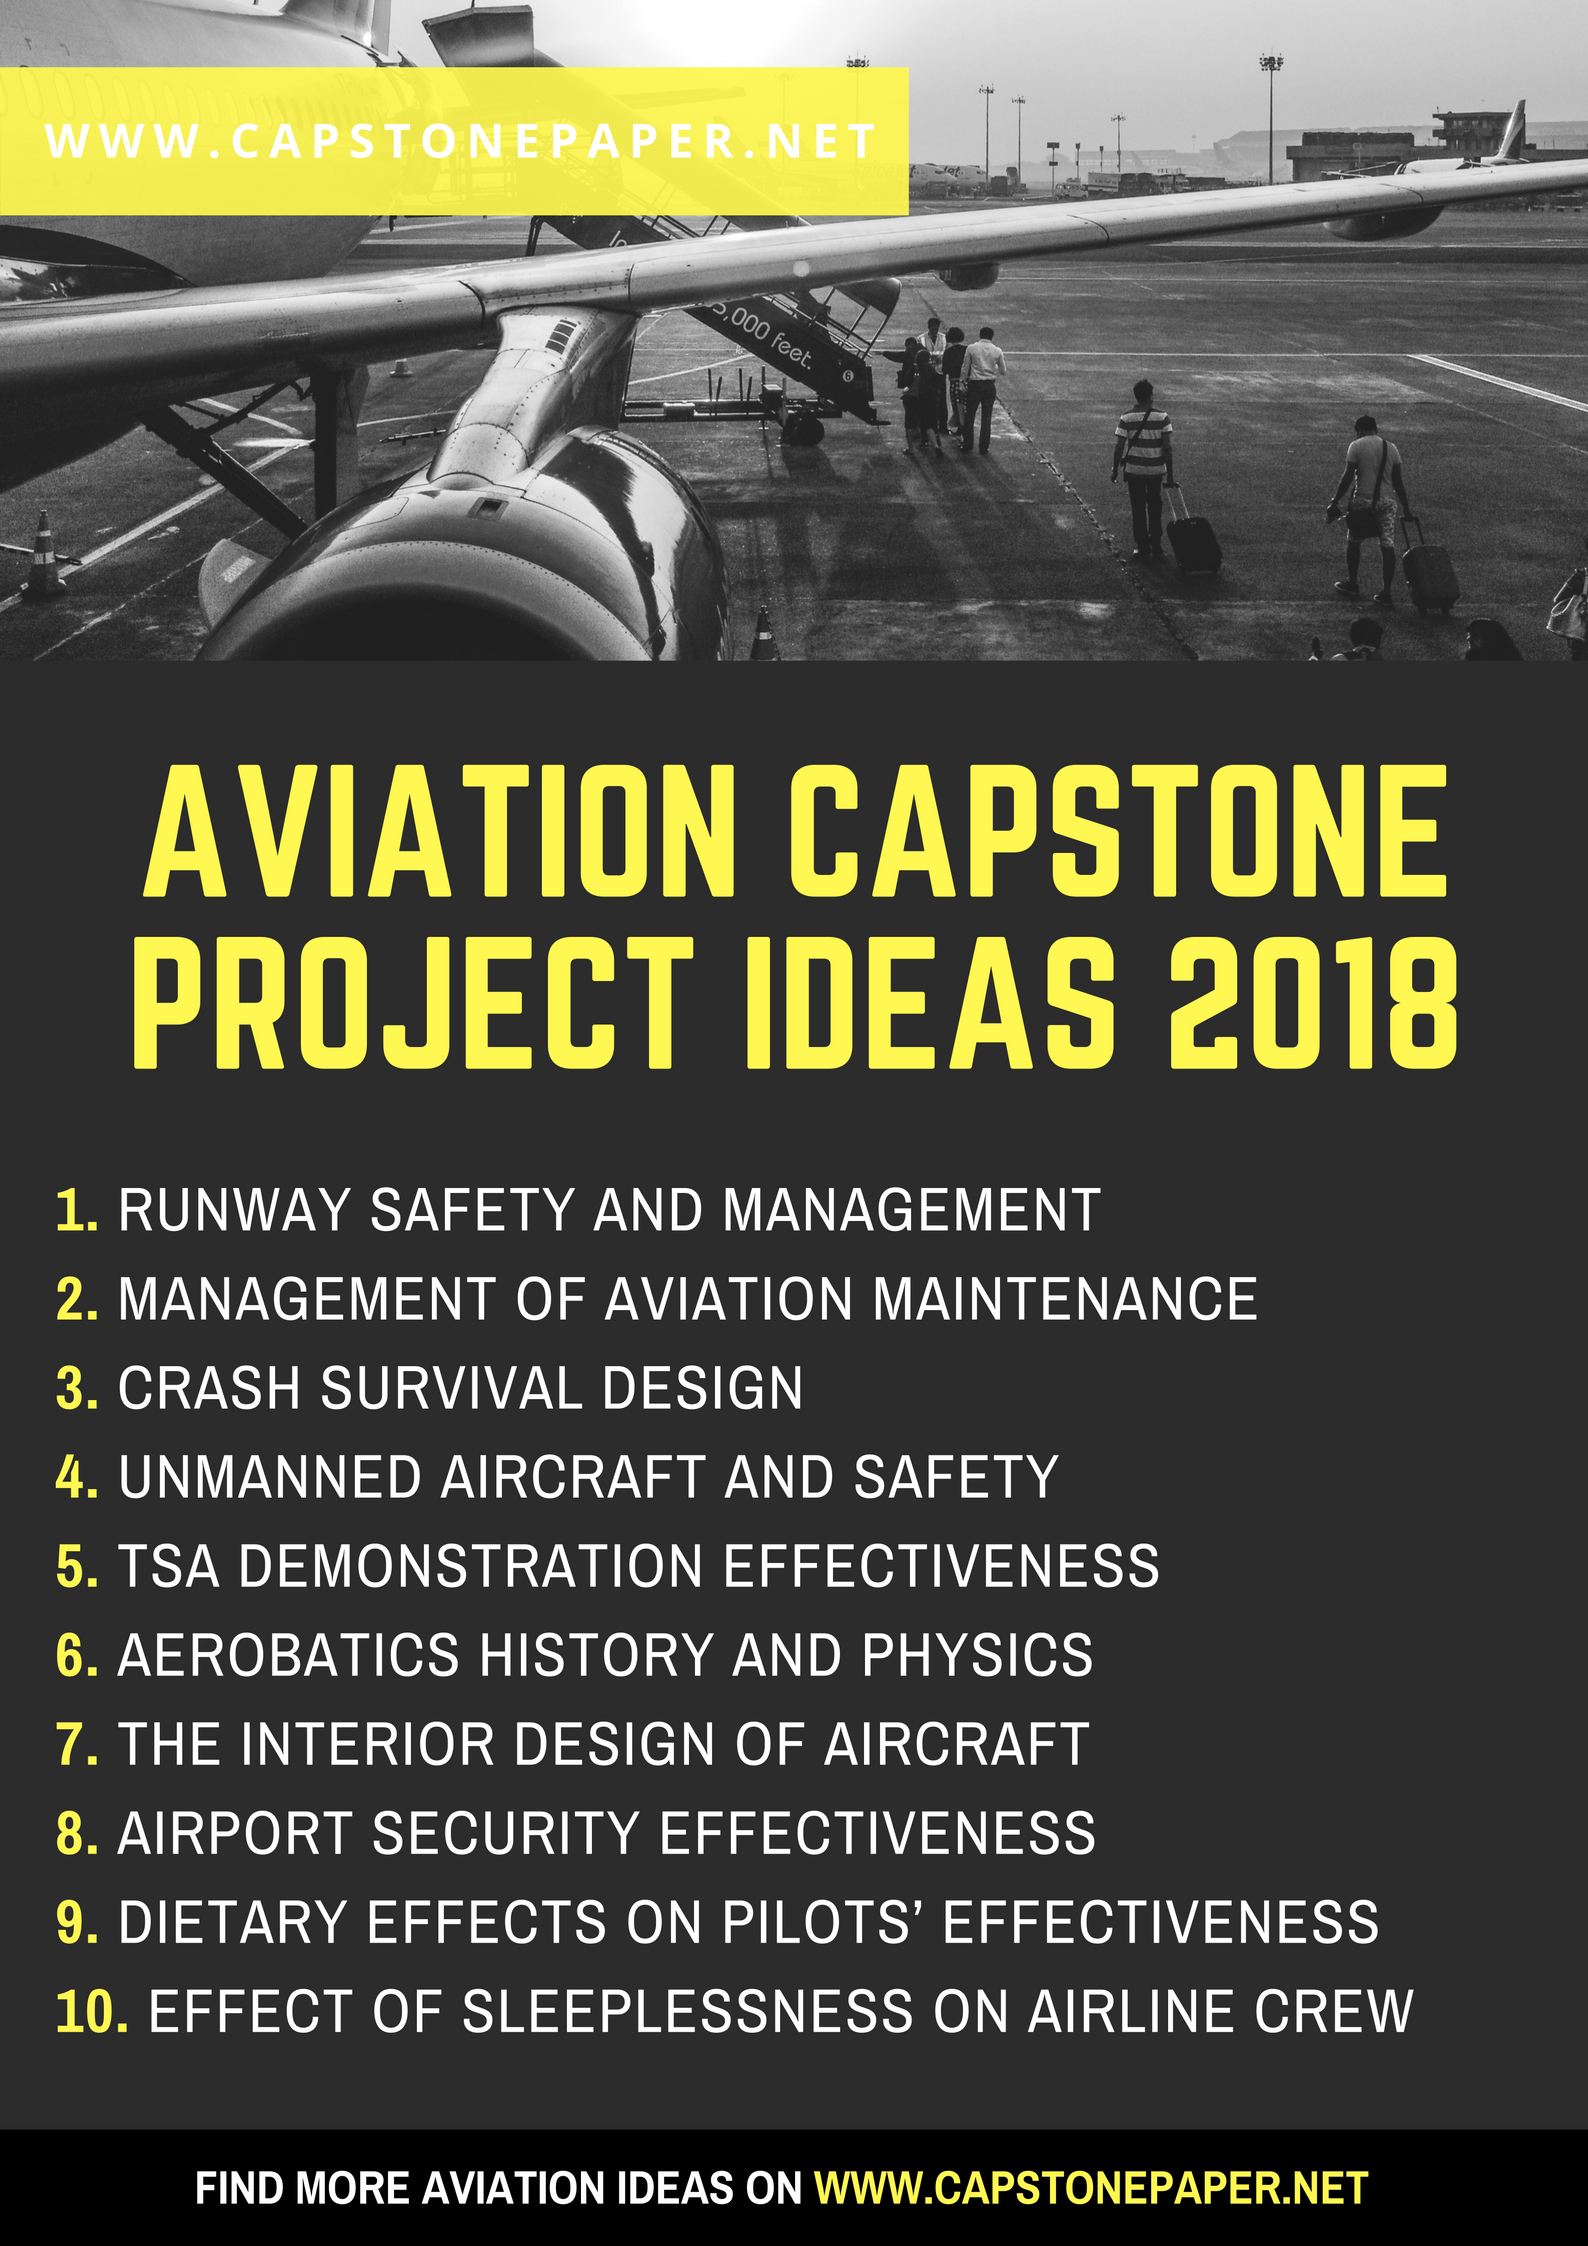 Aviation Capstone Project Ideas 2018 ✈️ Find more useful